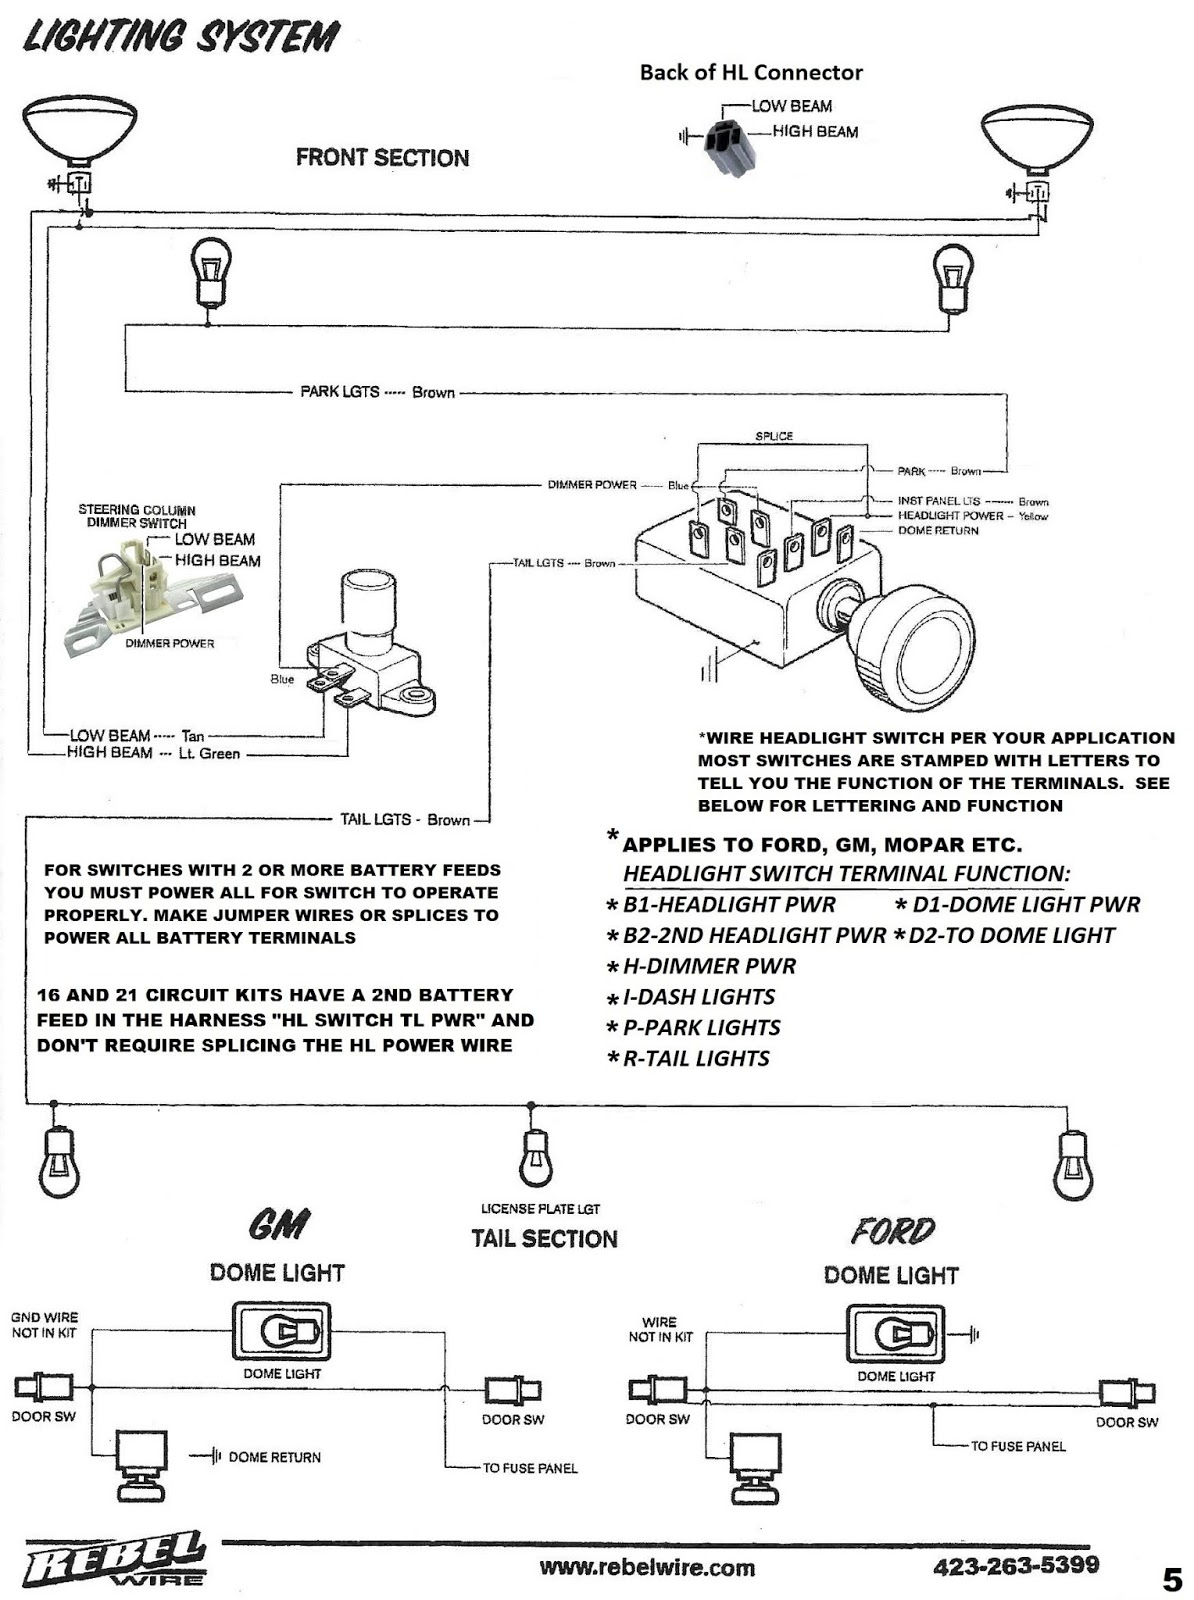 60 s cadillac headlight switch rebel wire lighting system wiring diagram [ 1194 x 1600 Pixel ]